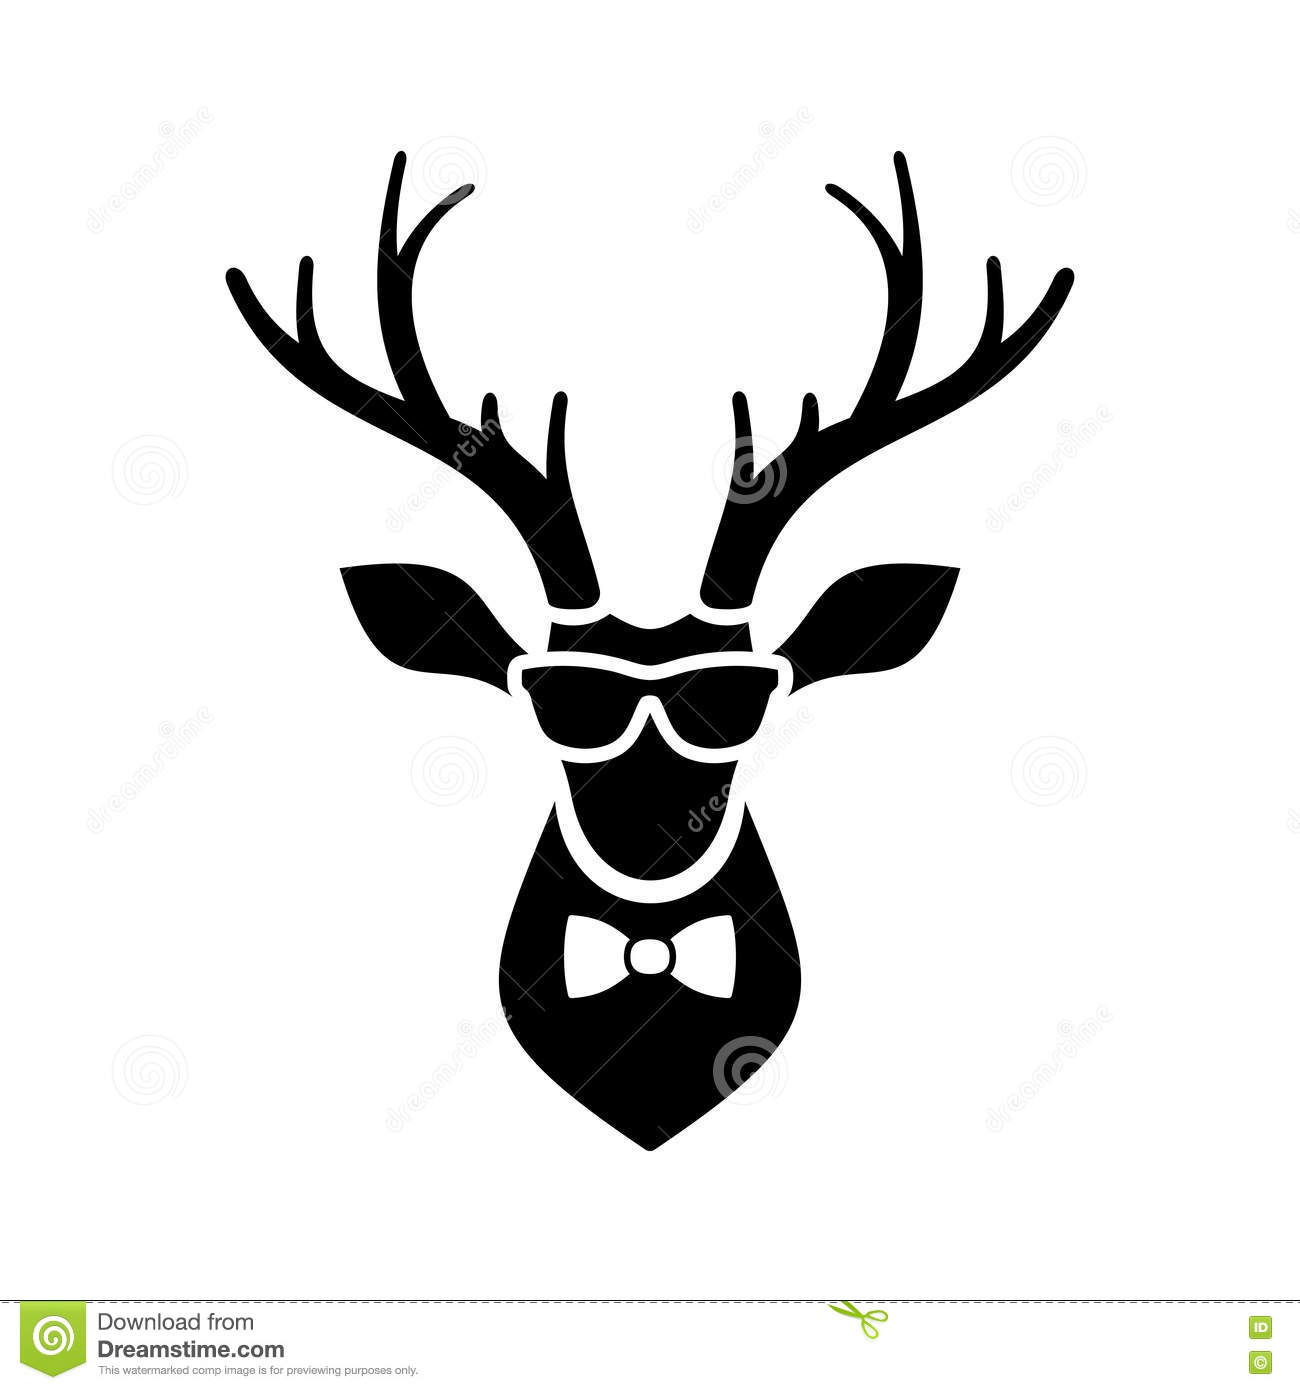 ... With Hipster Sunglasses And Bow Tie Stock Vector - Image: 44657729